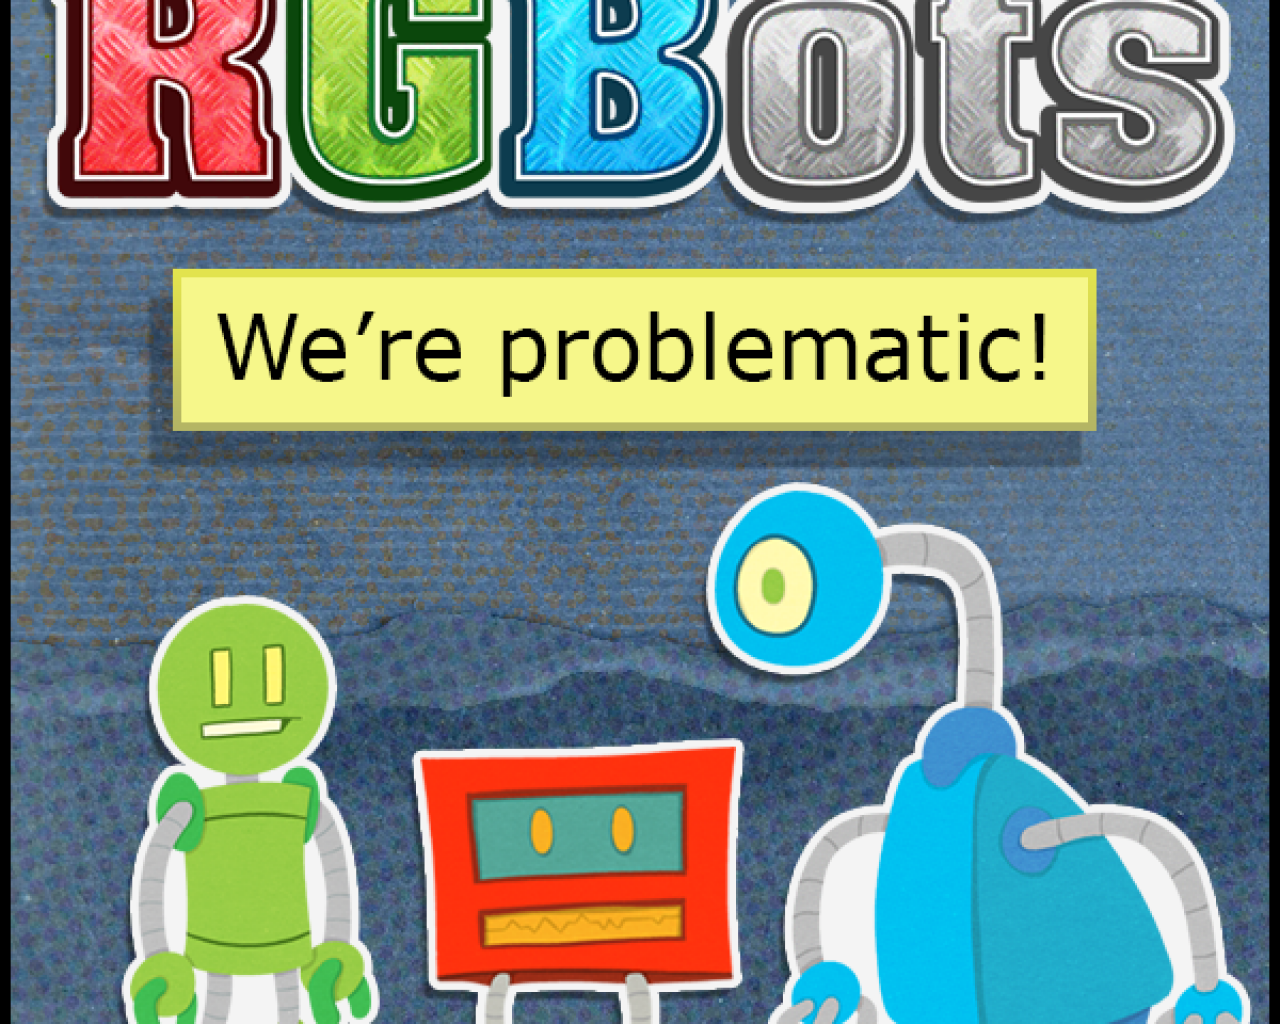 Poster Image for RGBots